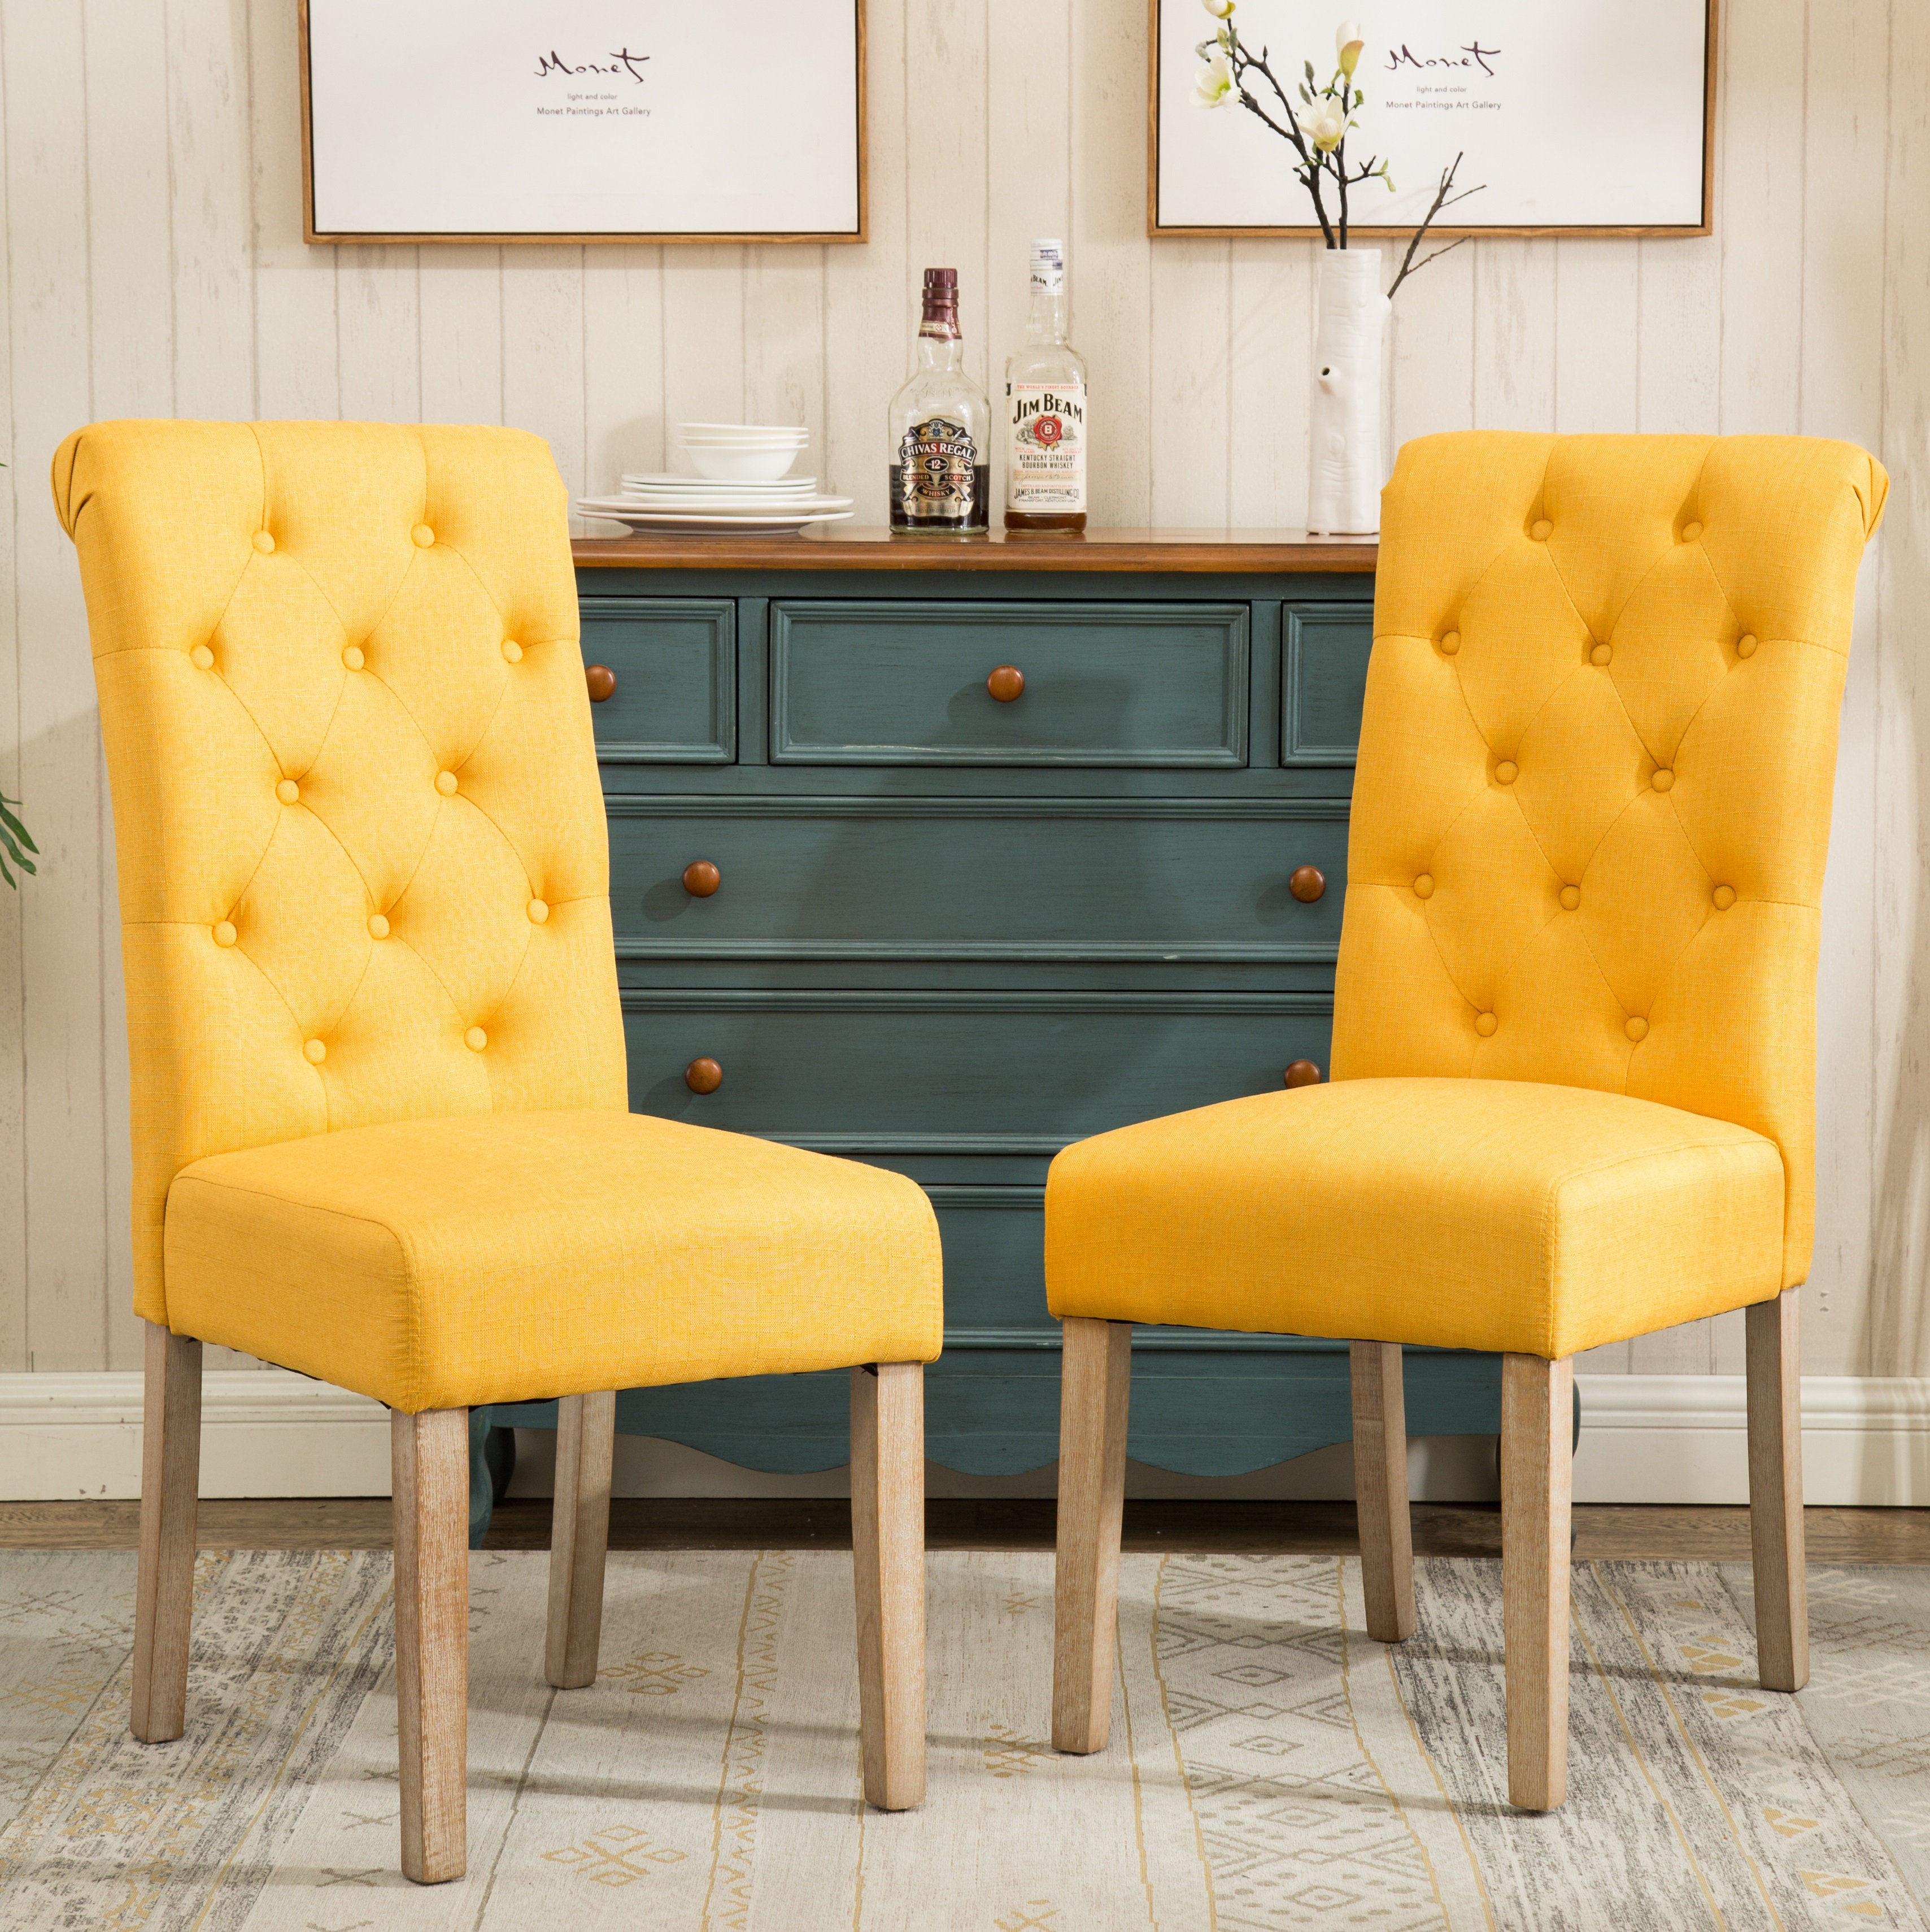 Fabric Tufted Dining Chair Five Color Option | Coastal ...